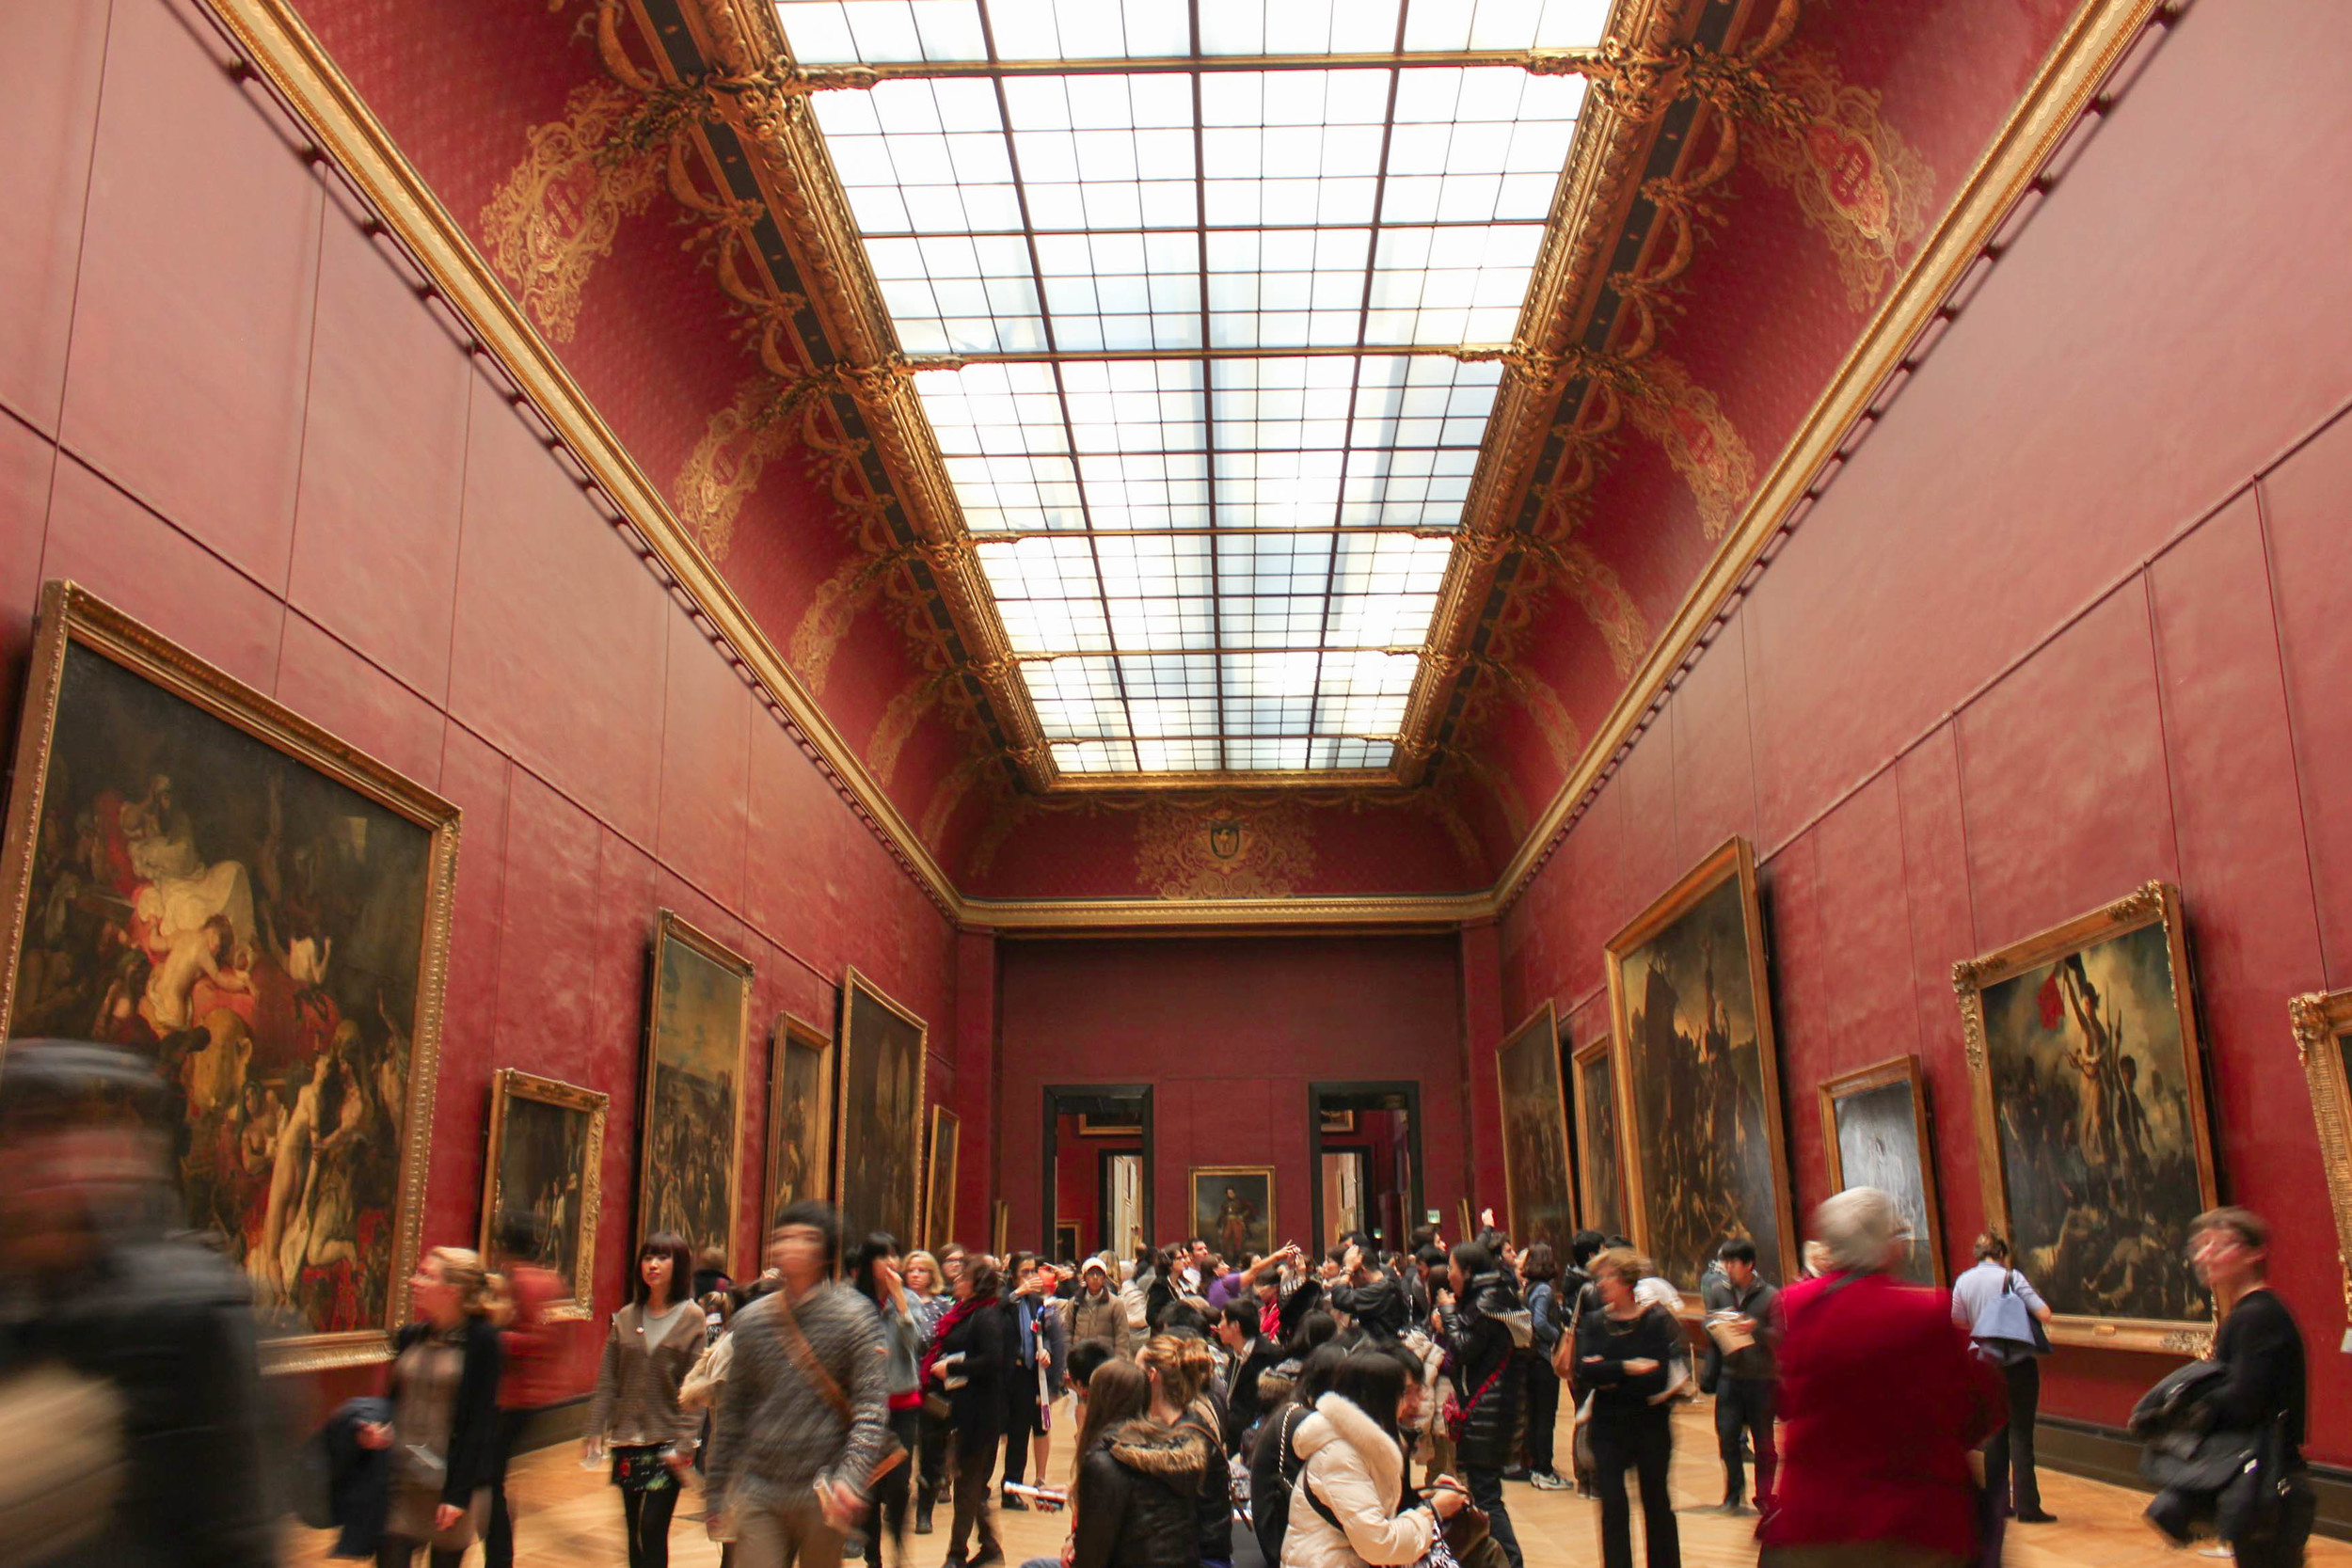 Louvre December 2013. Paris is a wonderful city to studying in!